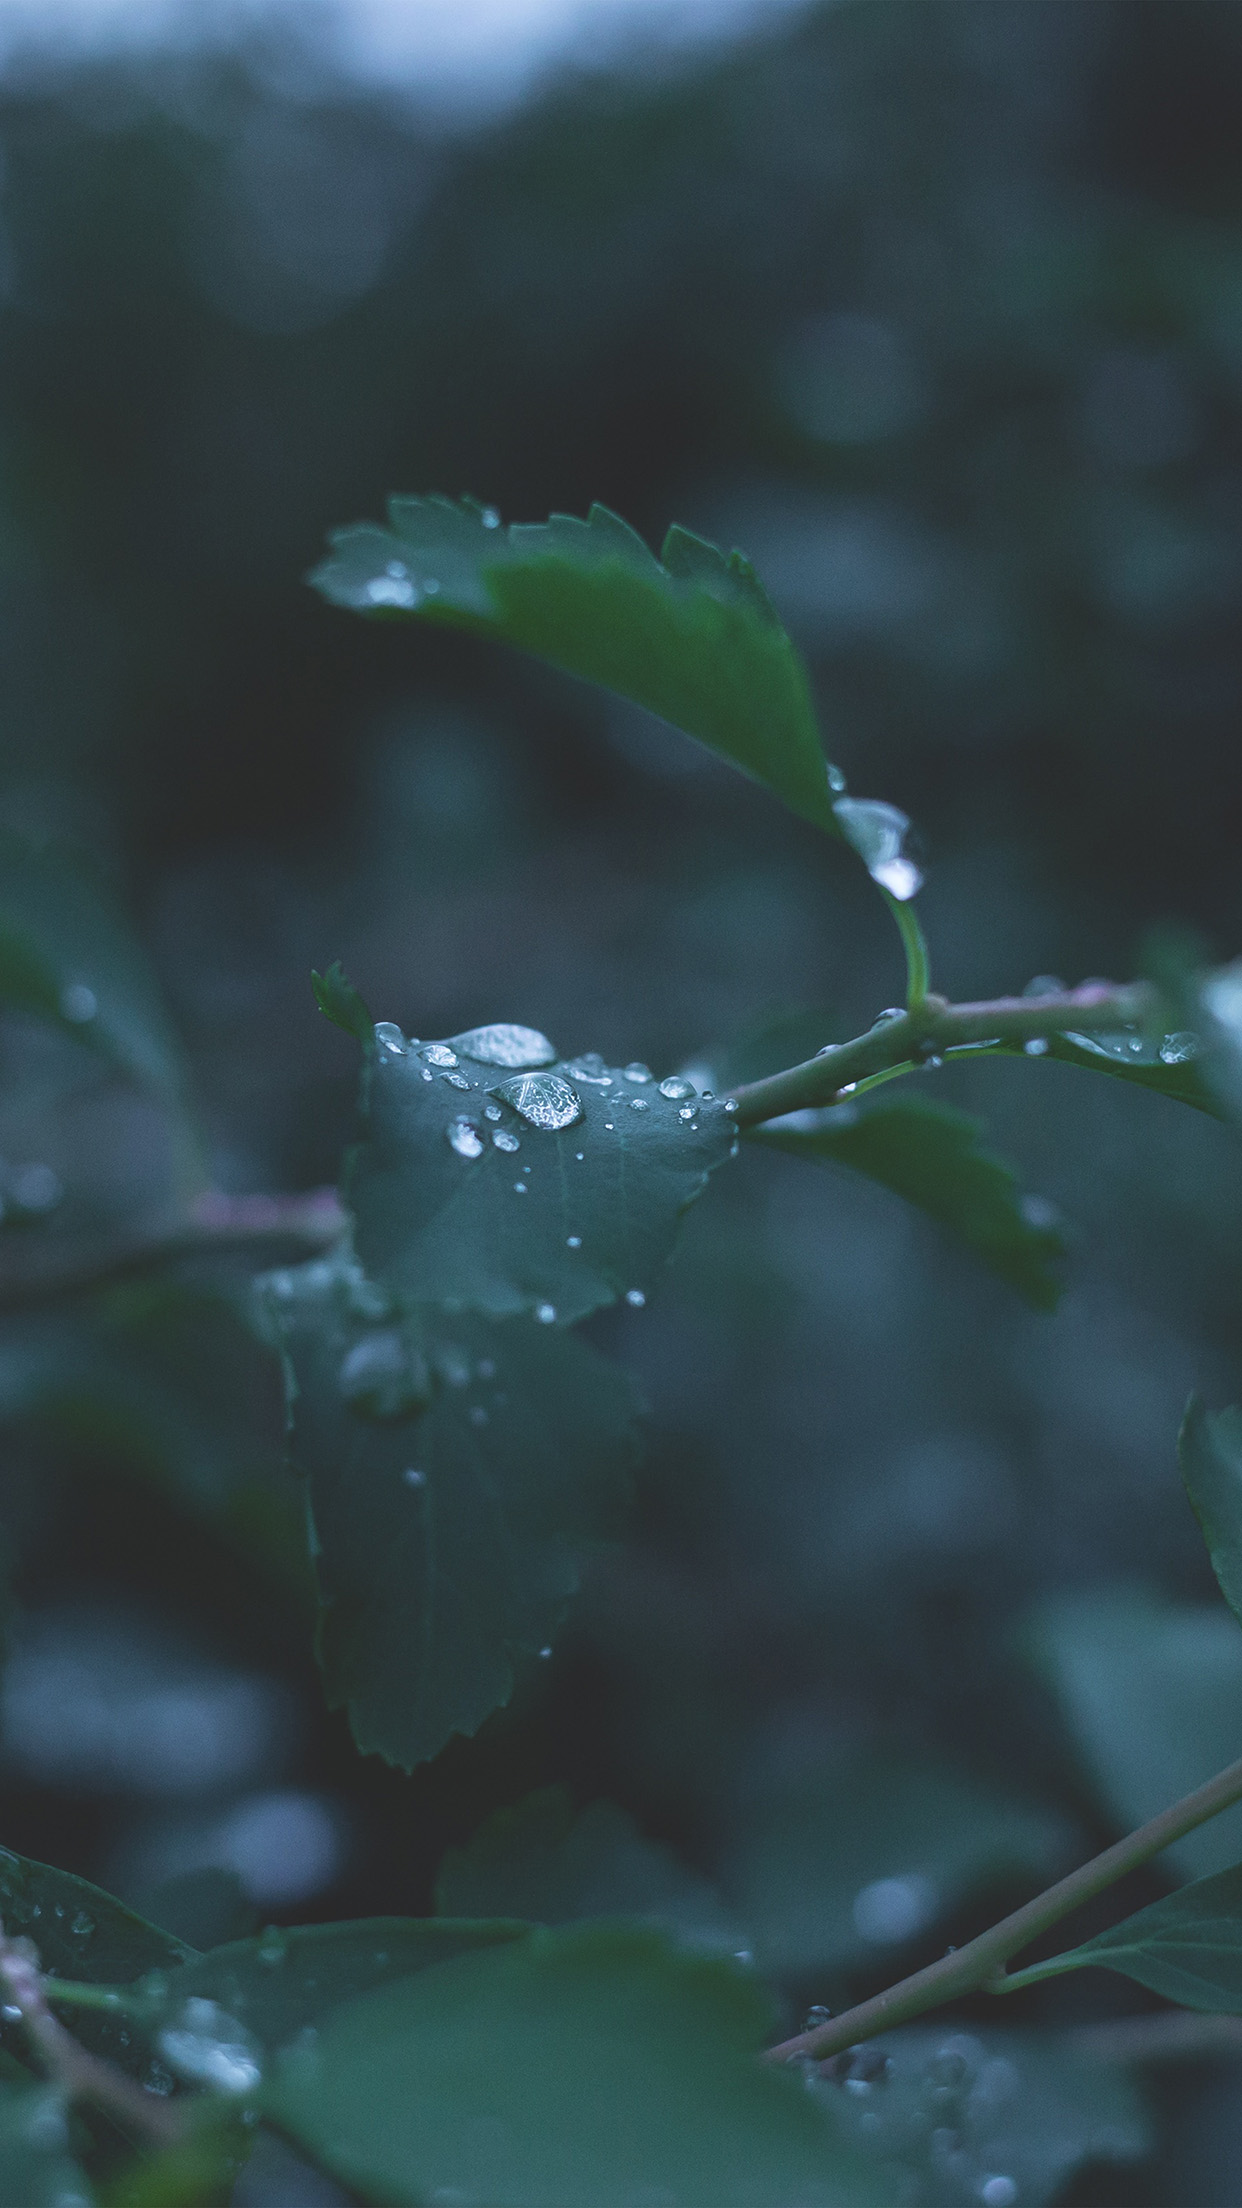 Leaf Water Rain Nature Green Android wallpaper